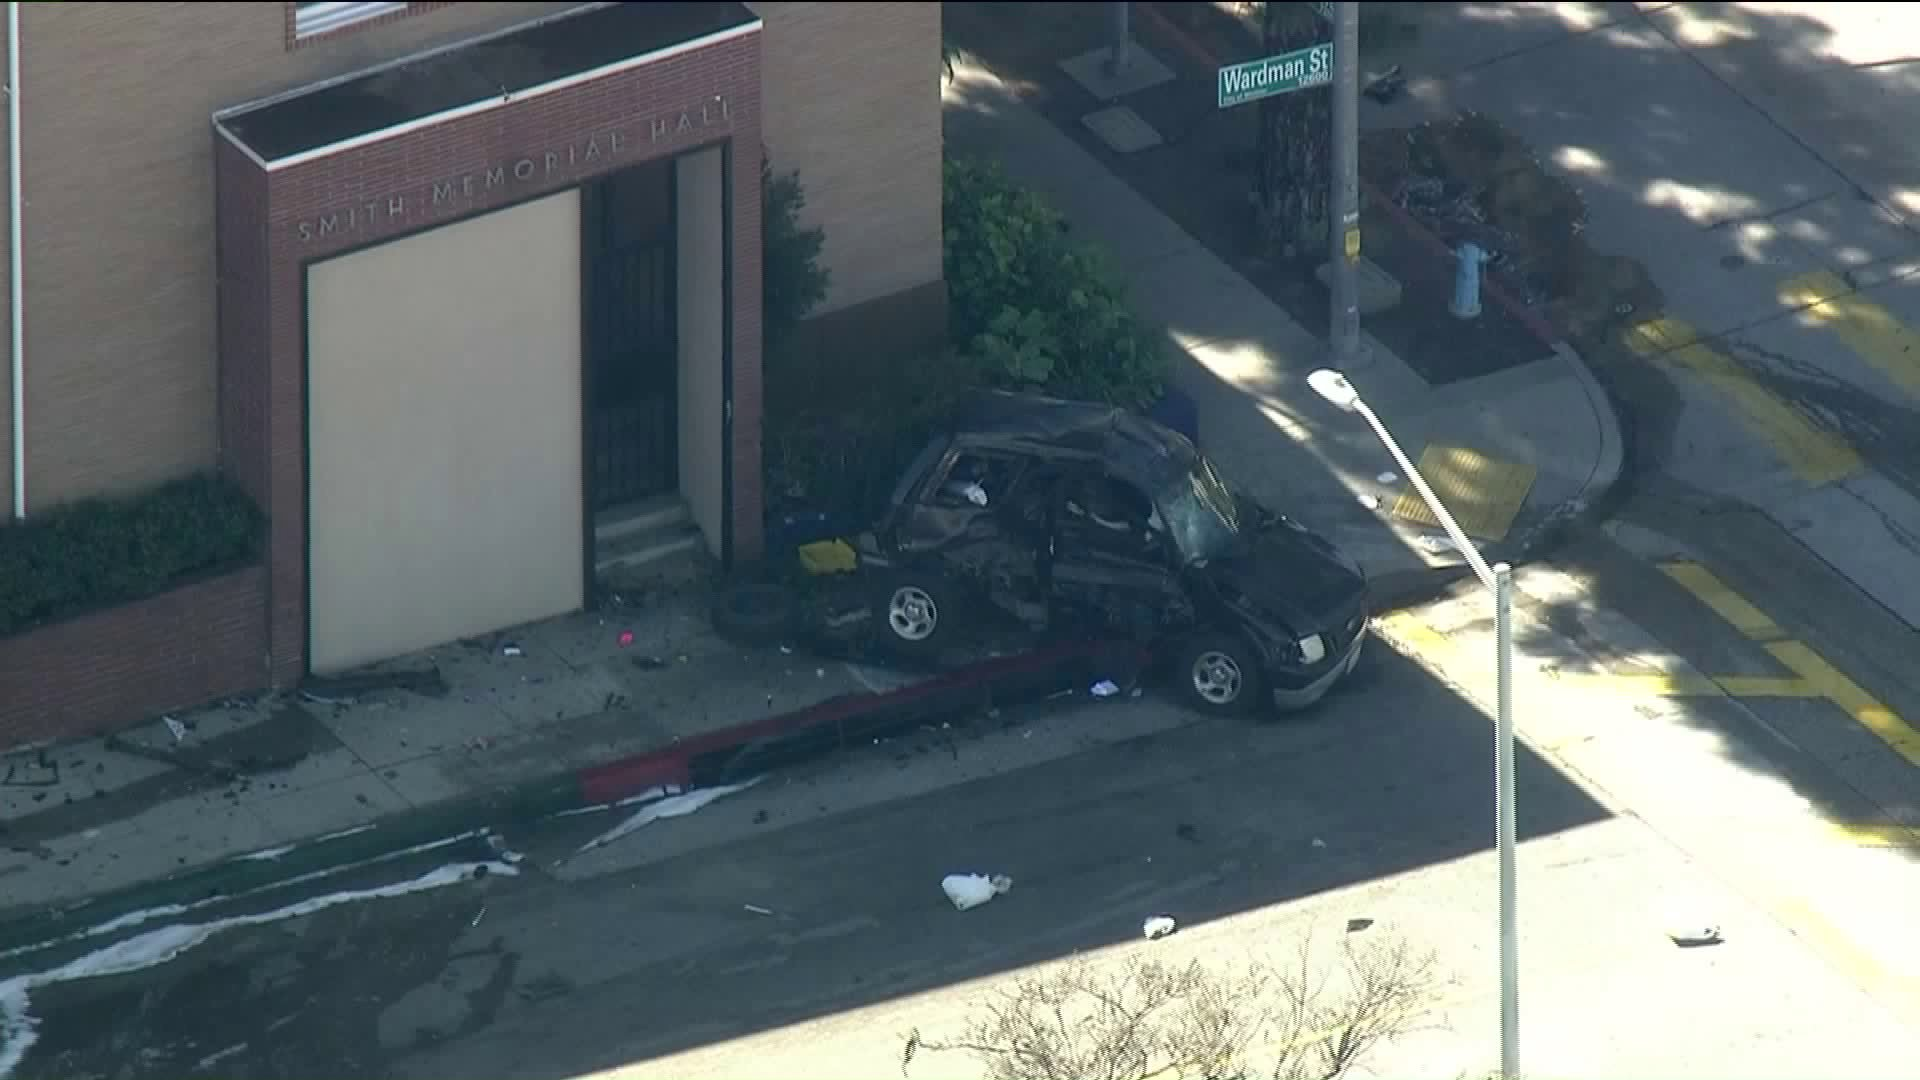 A police pursuit ended with a fiery crash in Whittier on Feb. 18, 2019, sending both a suspect and an uninvolved motorist to the hospital, officials said. (Credit: KTLA)